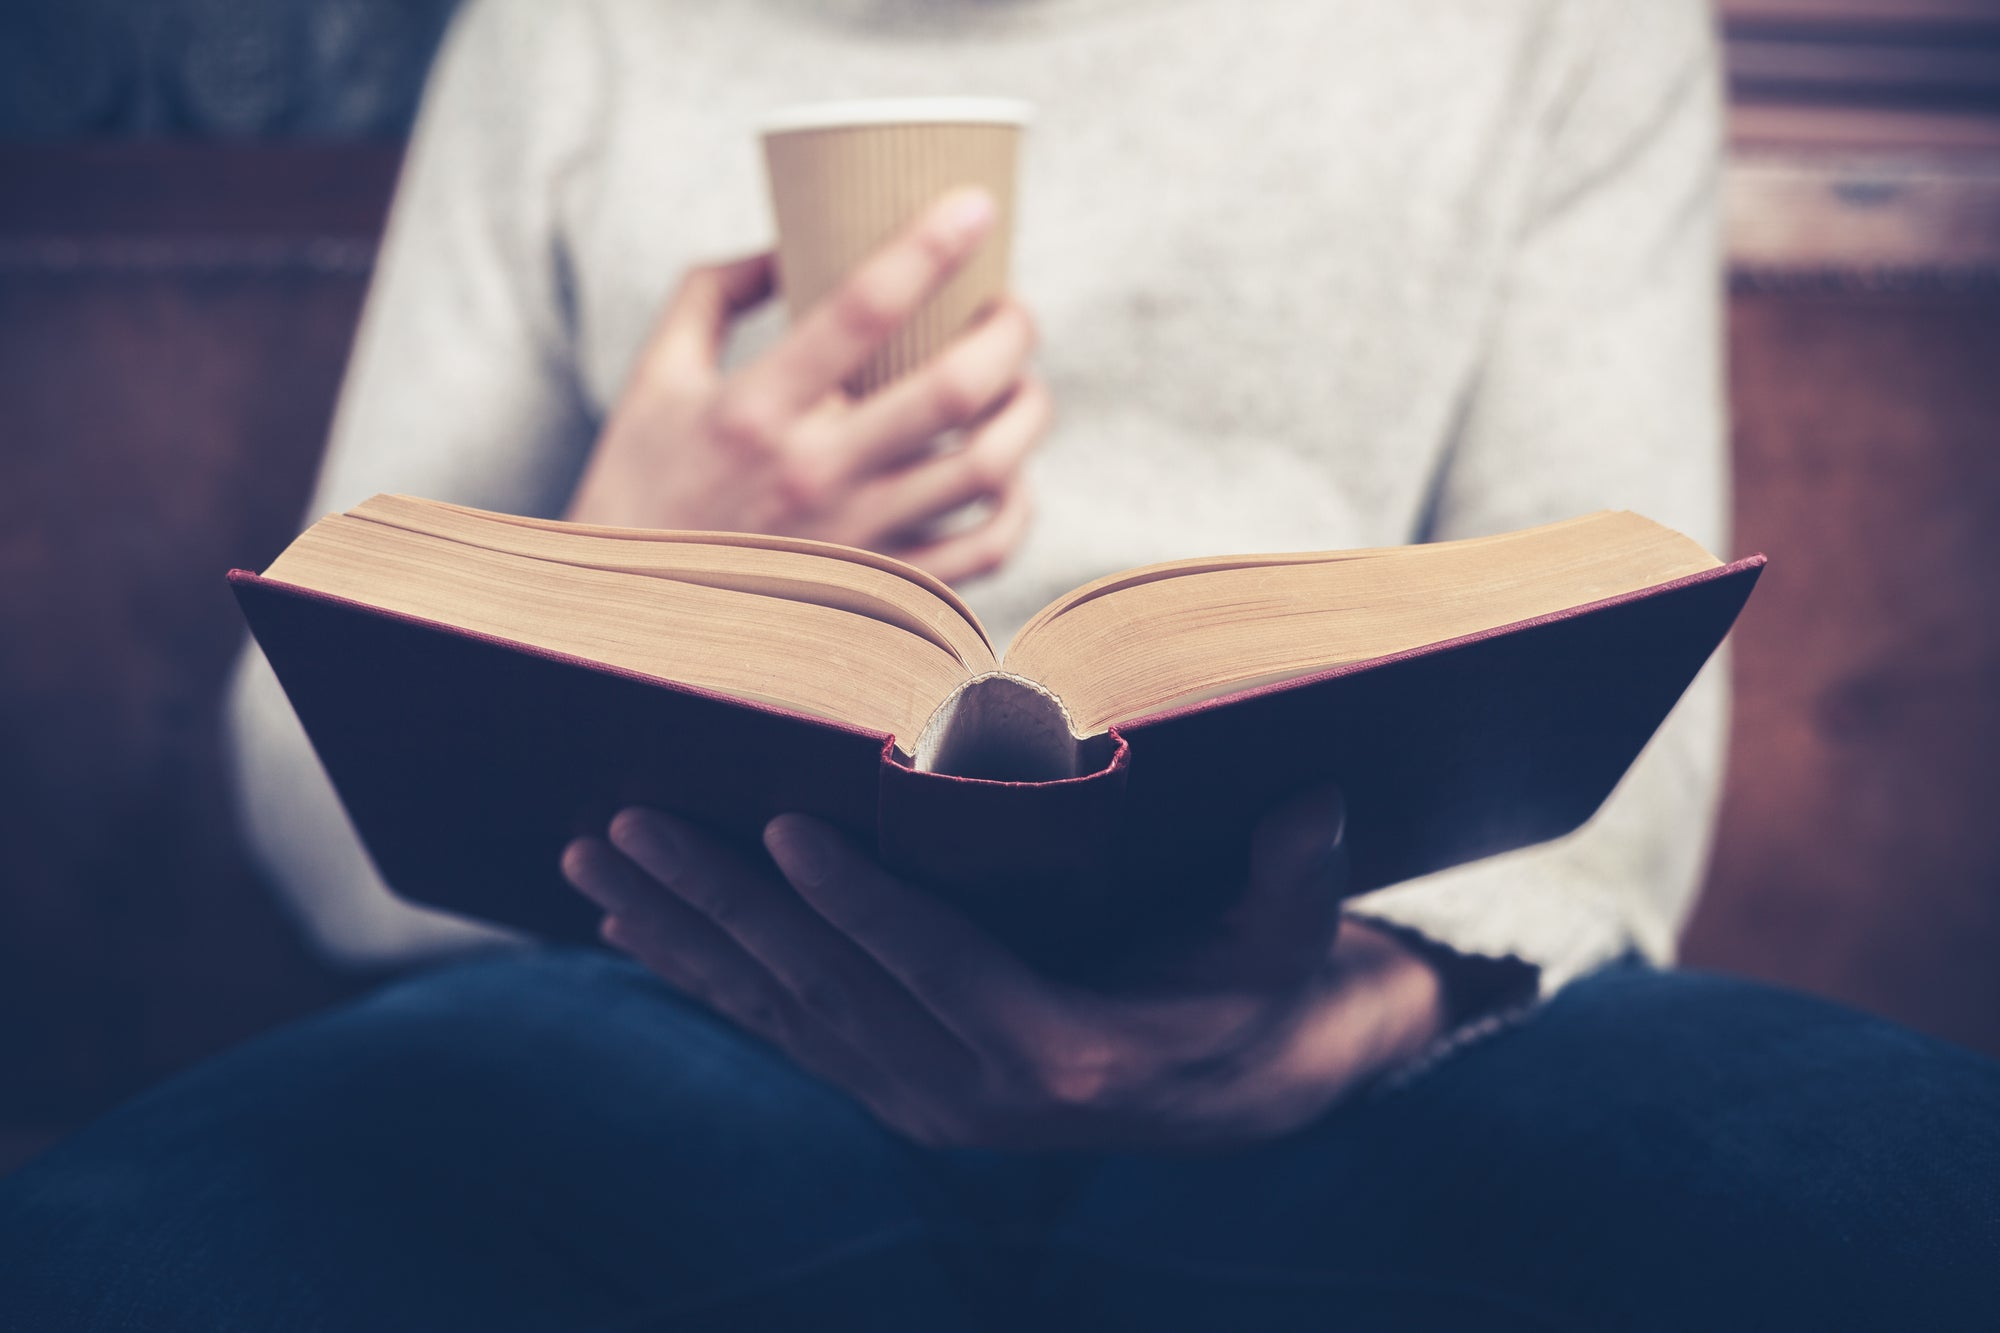 'Speed reading' isn't real, but you can still train yourself to read faster